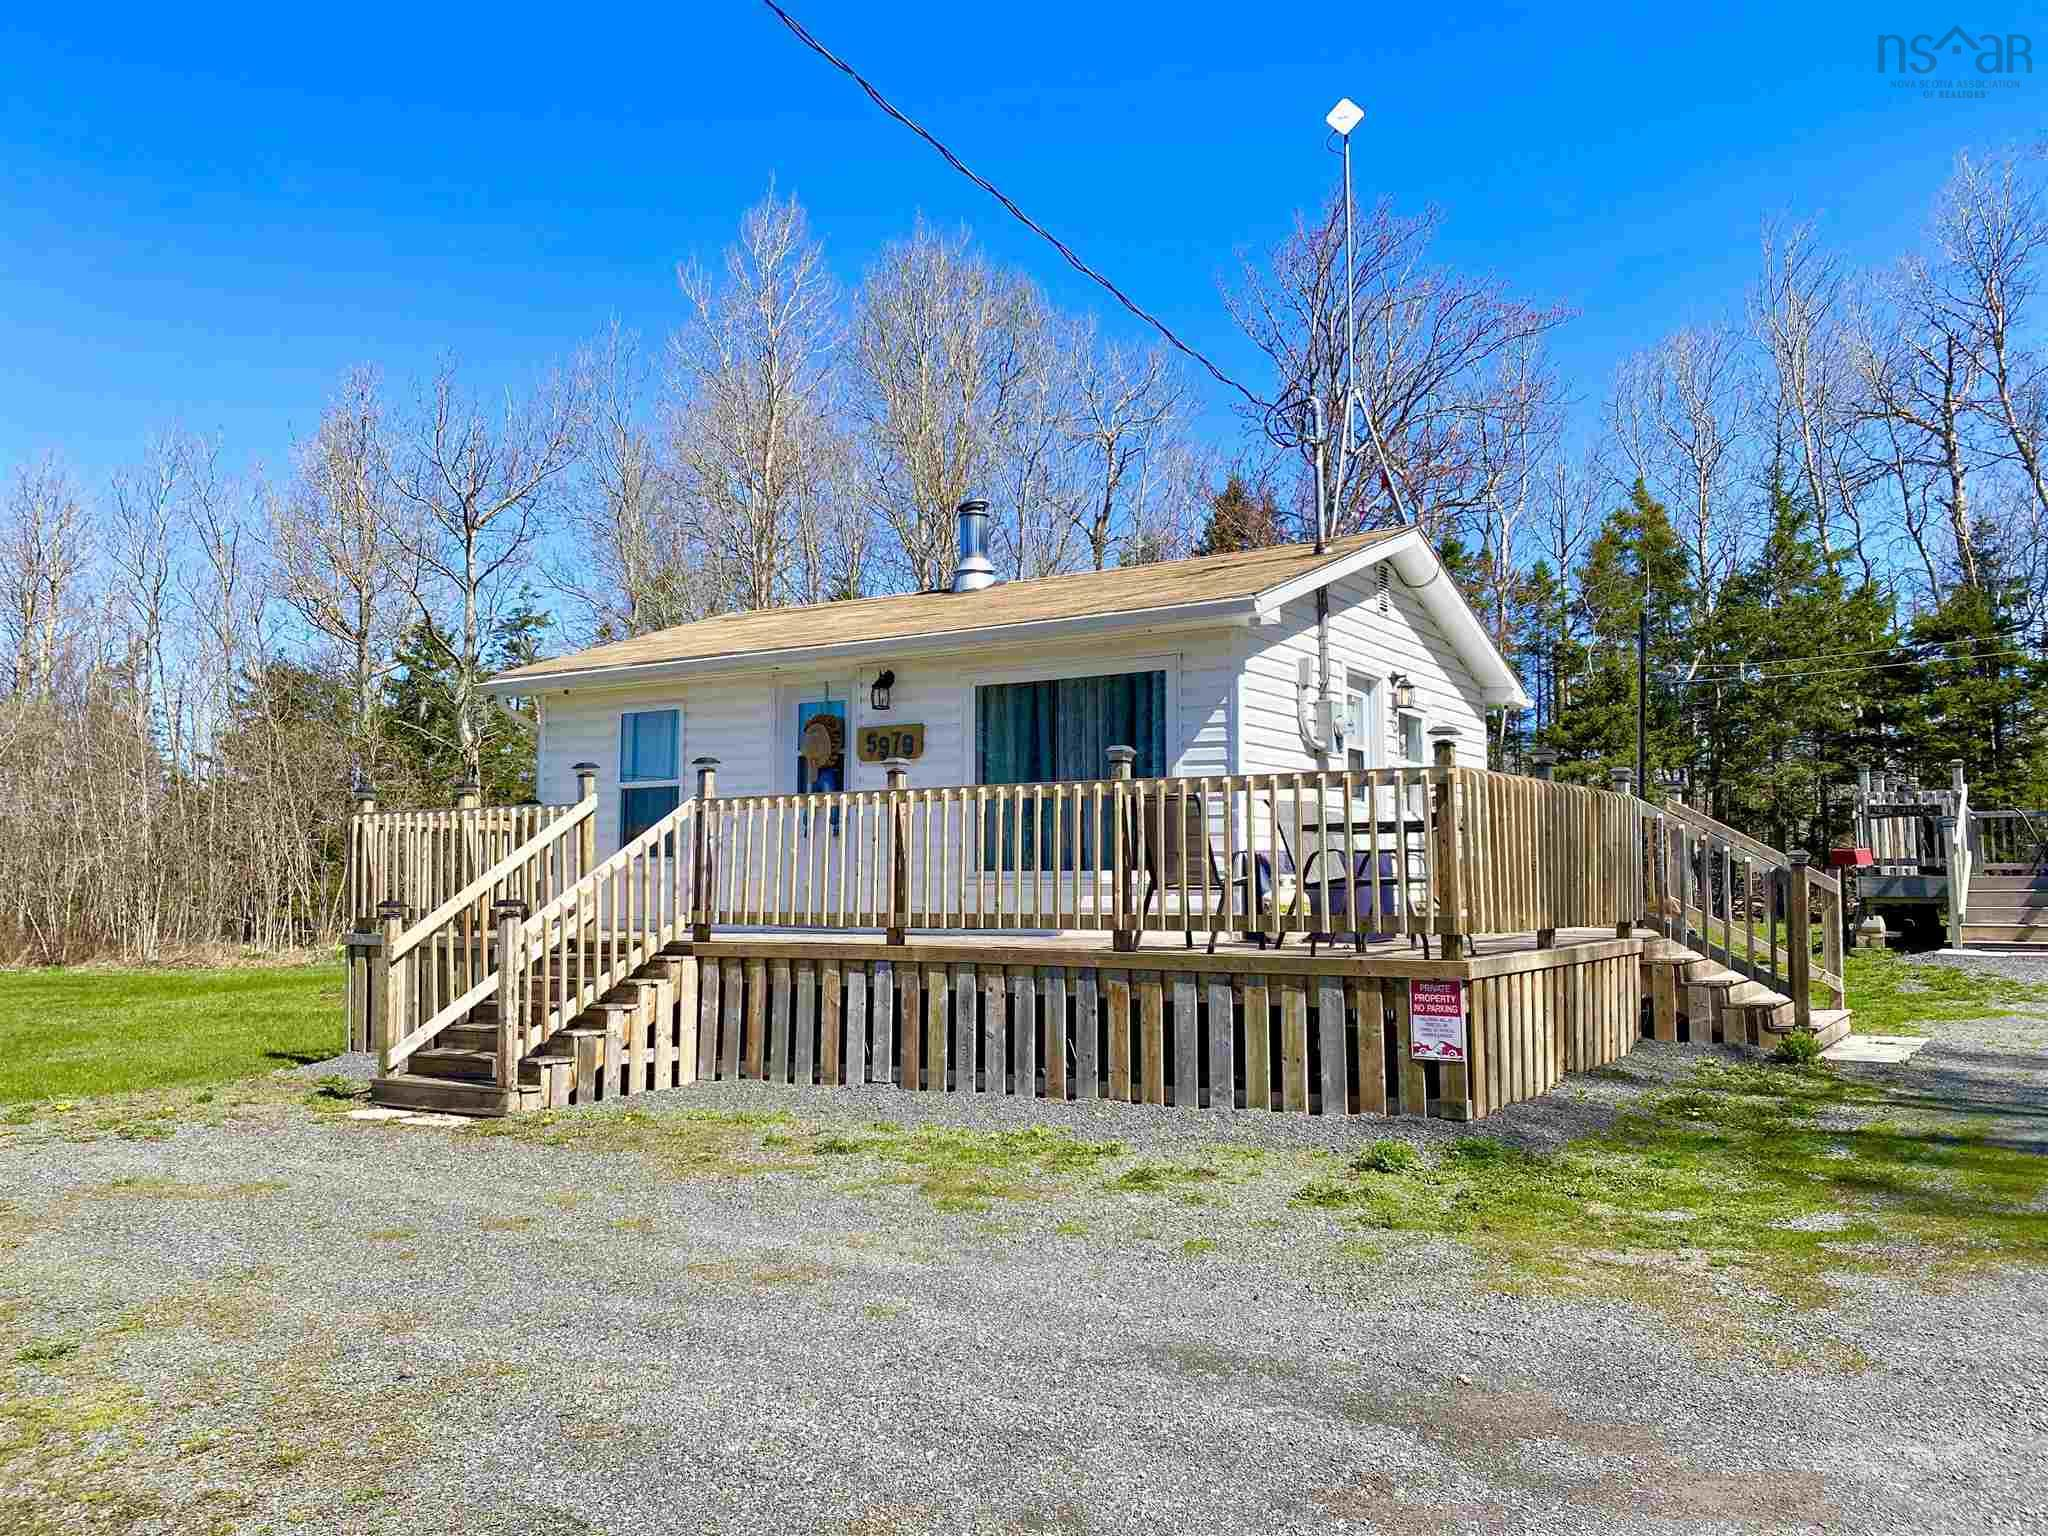 5979 Highway 6, Caribou River, Pictou, NS, United States B0K 1H0, 1 Bedroom Bedrooms, ,1 BathroomBathrooms,Residential,For Sale,5979 Highway 6,202110670